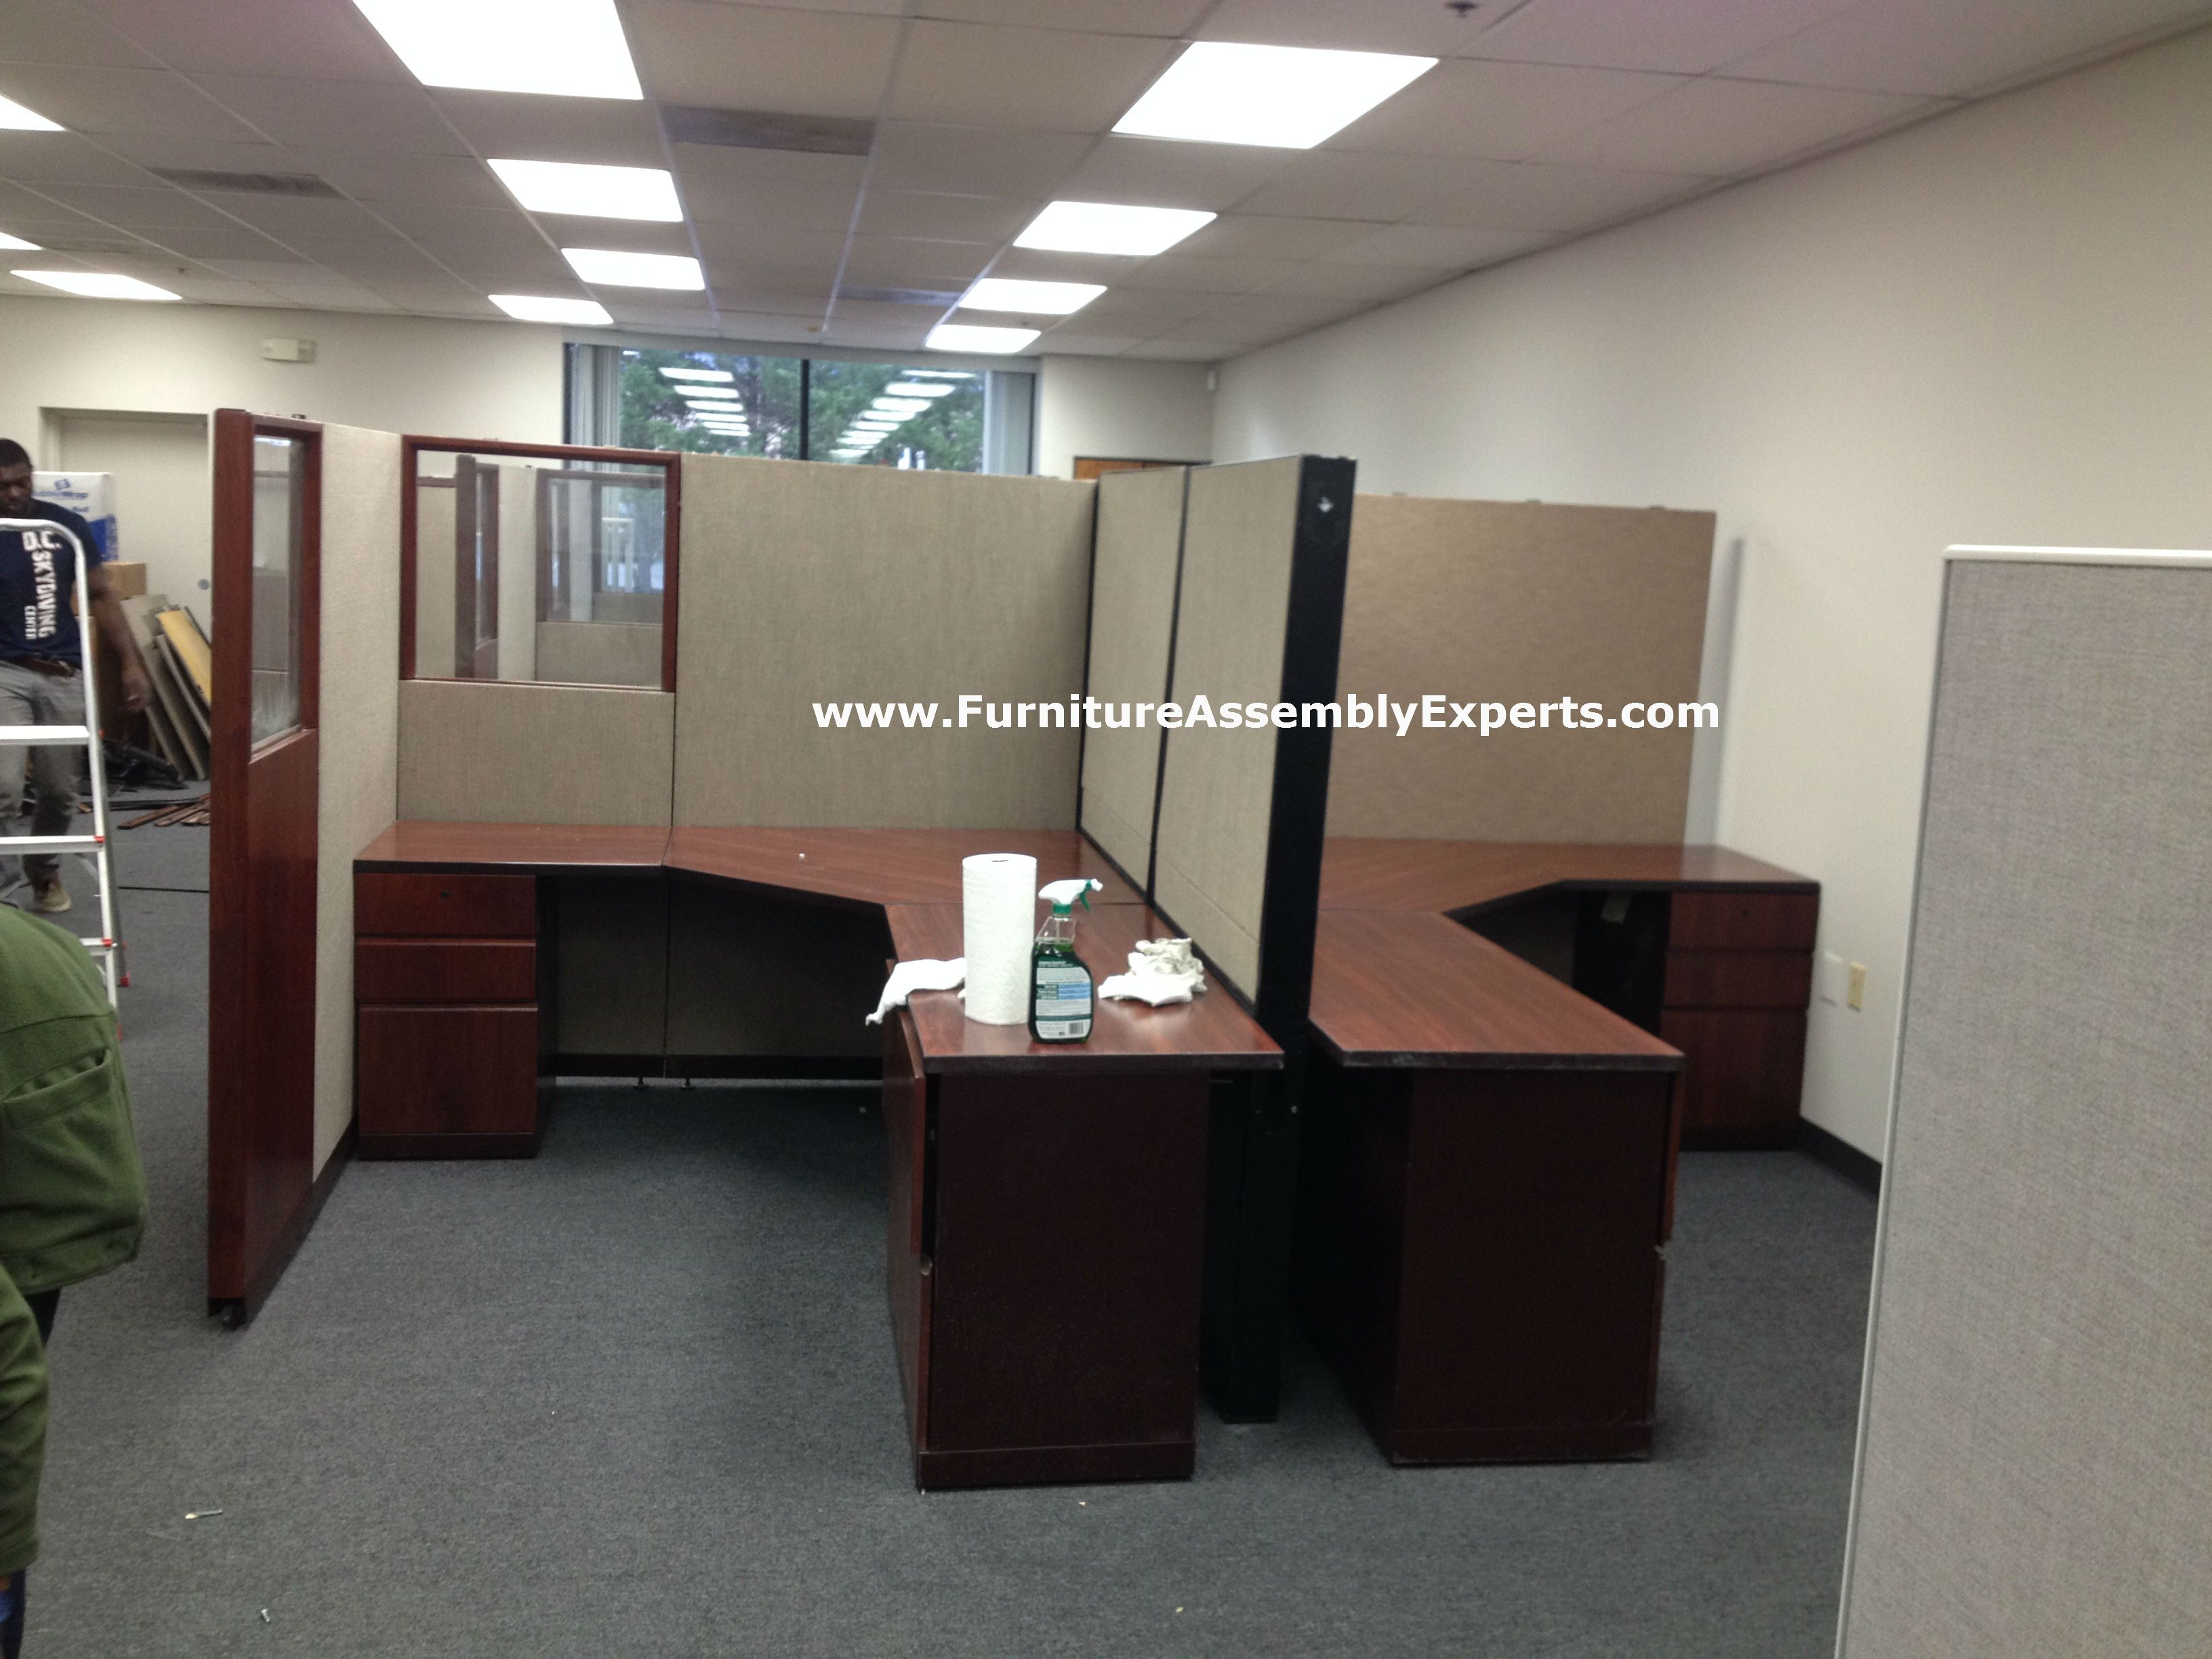 used office cubicles assembled in anne arundel county MD by Furniture Assembly Experts LLC